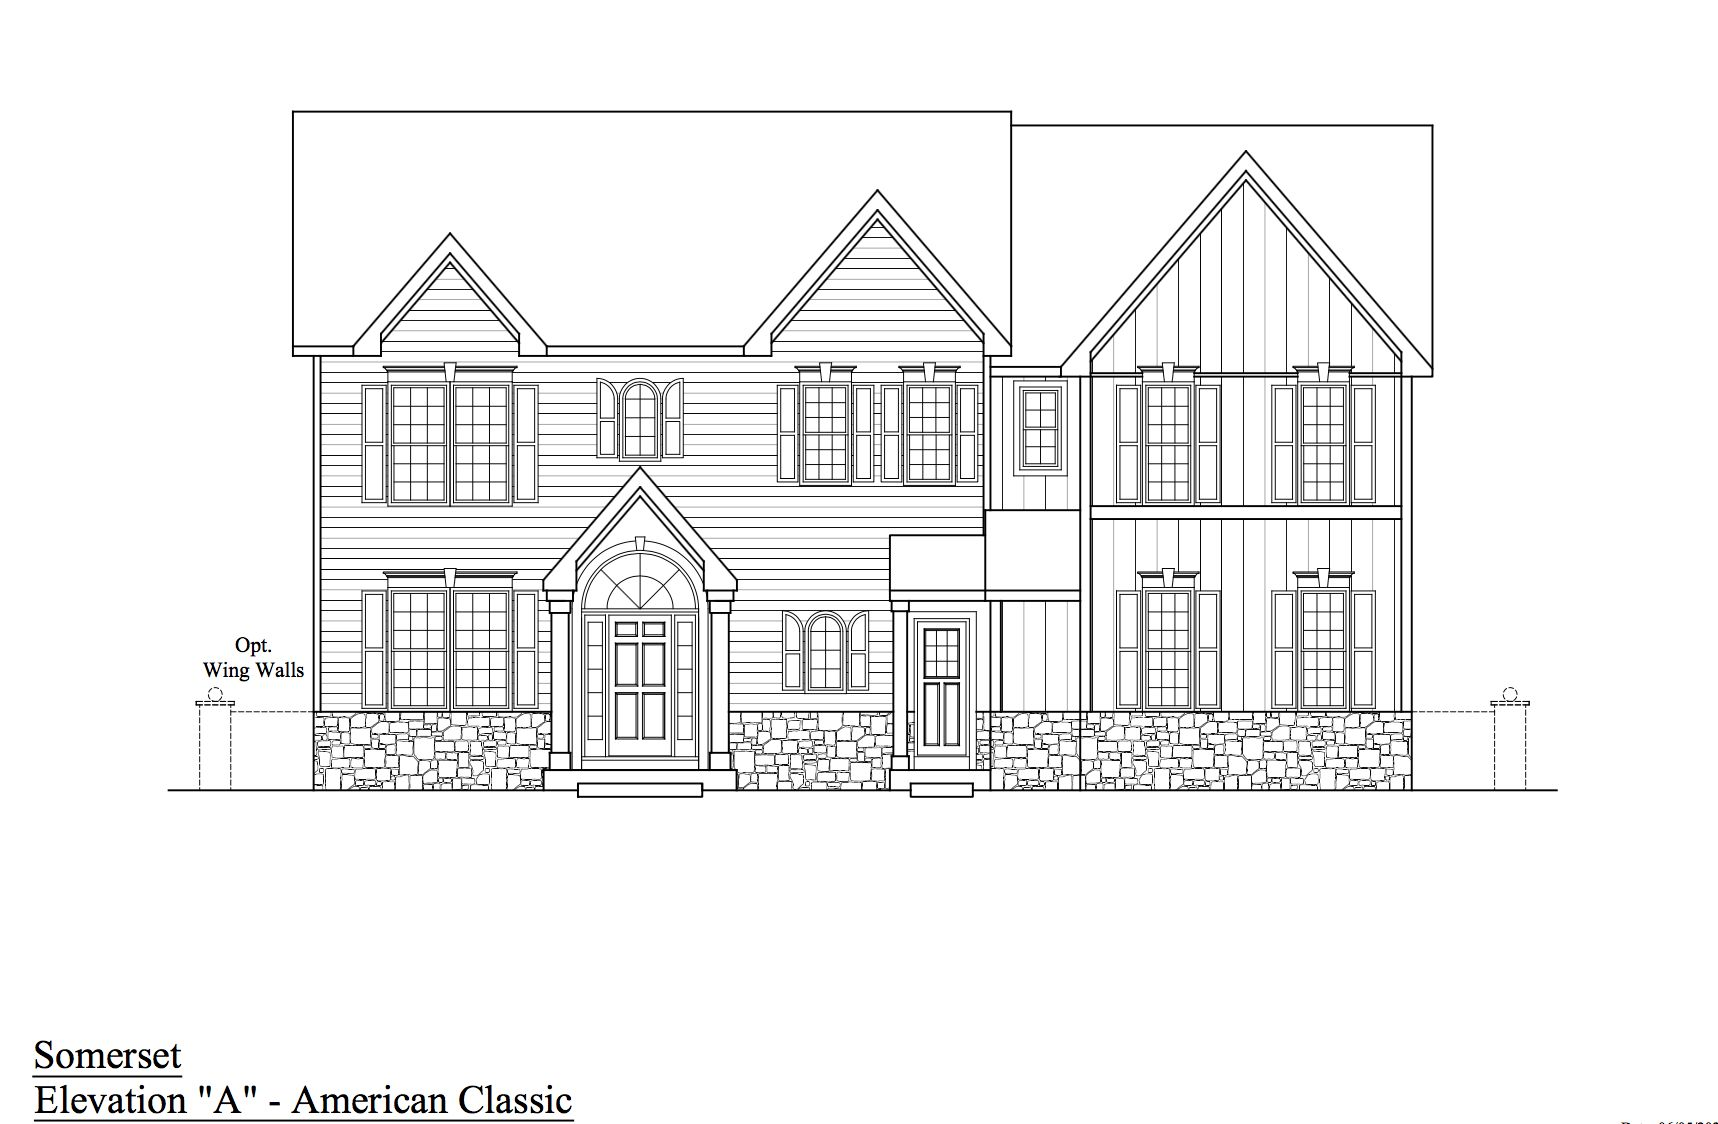 The Somerset:Elevation A - American Classic